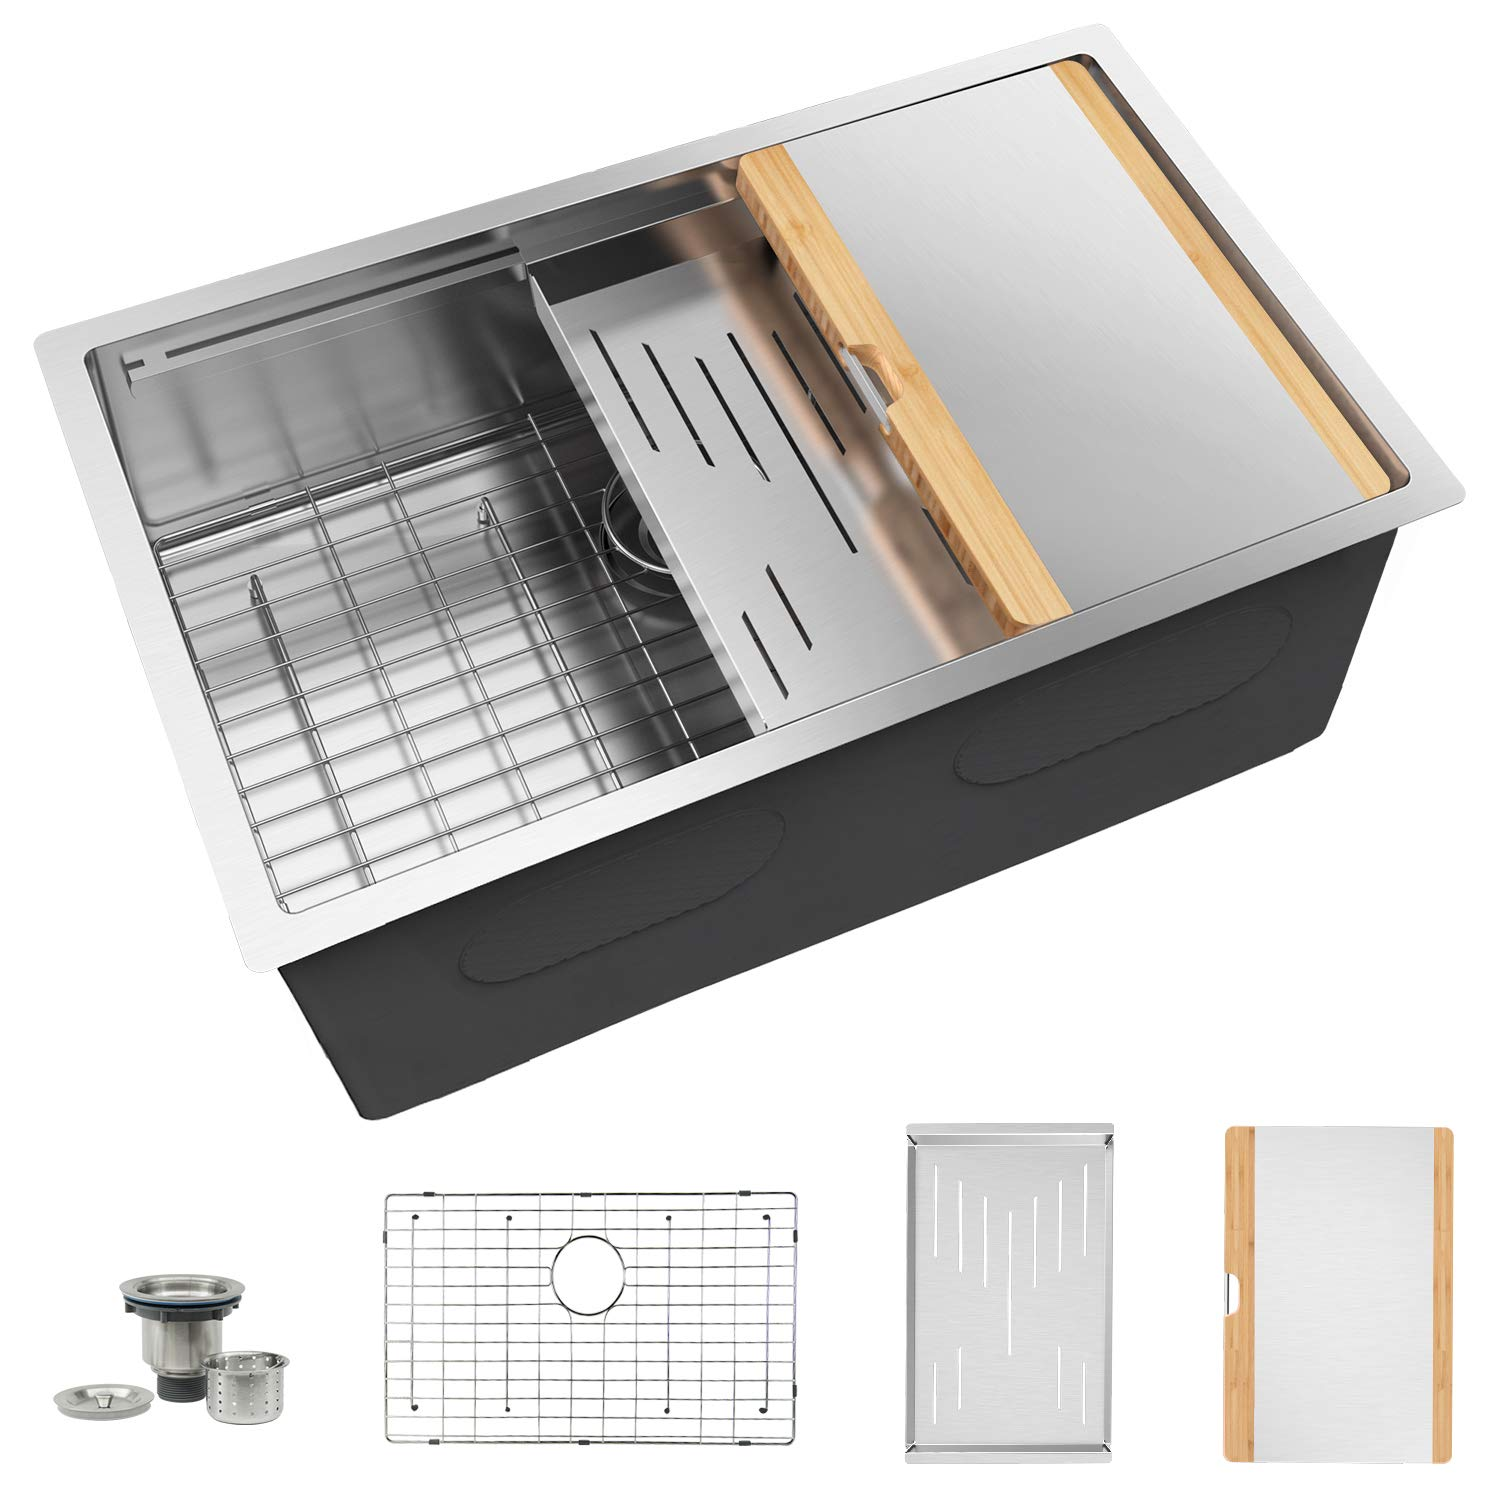 TORVA 24-Inch Workstation Undermount Kitchen Sink, 16 Gauge Stainless Steel Single Bowl with Stainless-steel Bamboo Cutting Board and Drain Tray (24 x 19 x 10 inches)